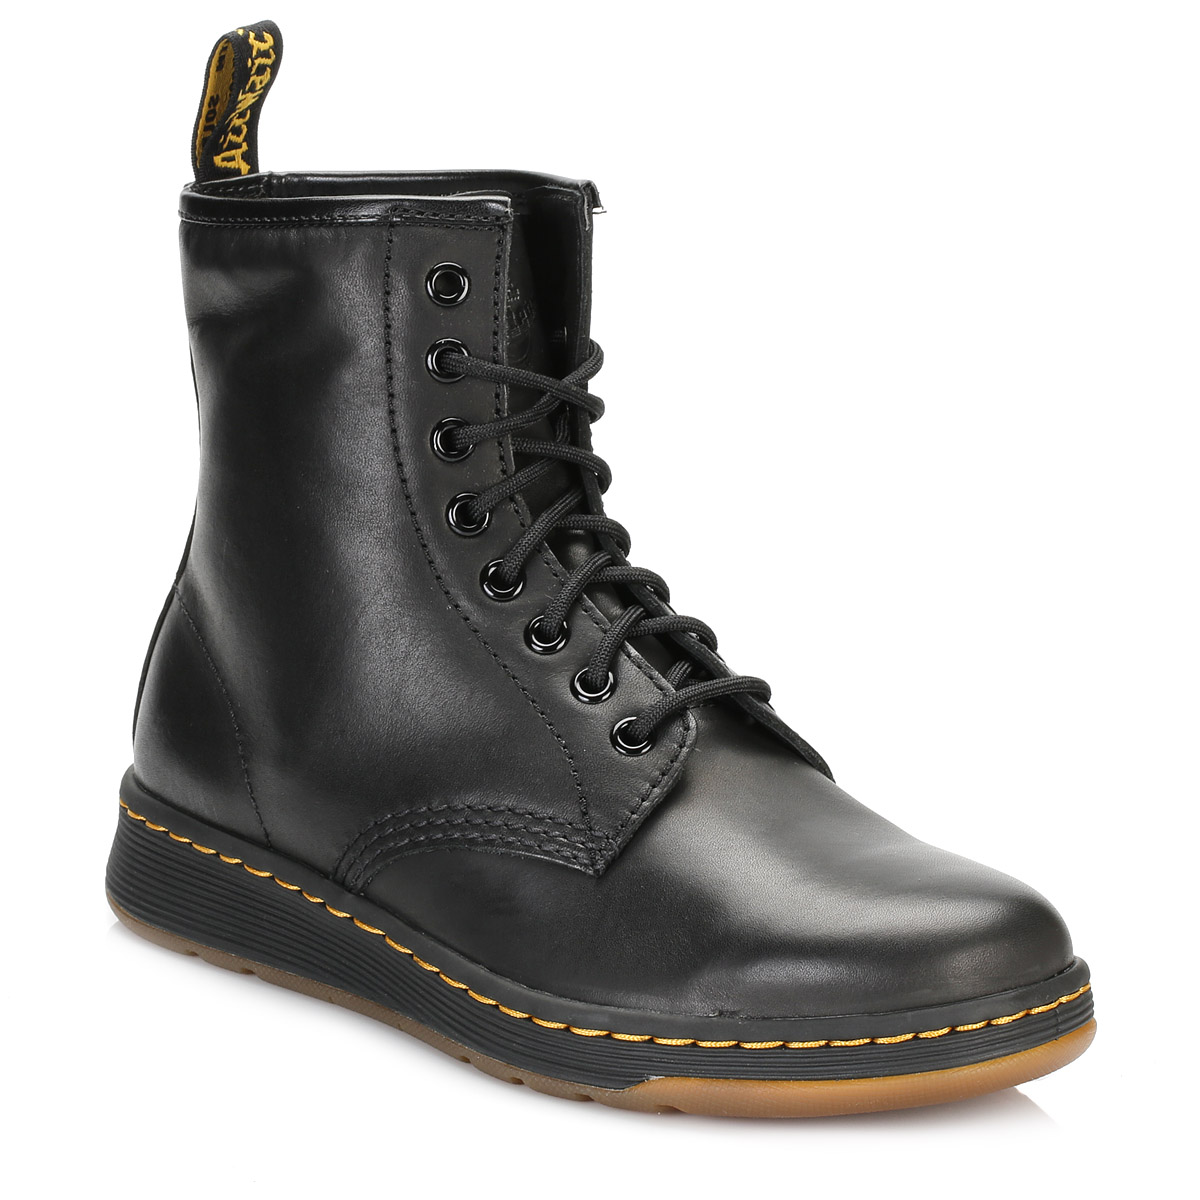 Timberland Leather Shoes Price In India